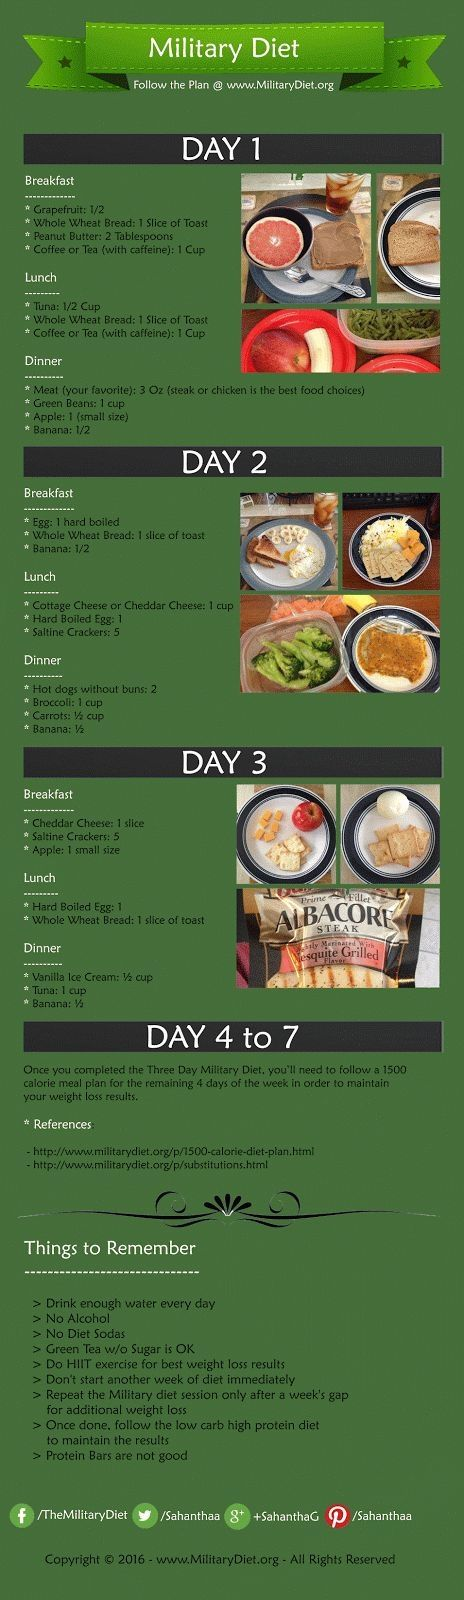 2 Week Diet Plan - Follow The Military Diet Program to lose upto 10 pounds in three days. Find the complete 3 day military diet plan in this infographic for easy understanding. Save this military diet infographic to your device. #MilitaryDiet #WeightLoss by mamie (Military Diet Workout) - A Foolproof, Science-Based System that's Guaranteed to Melt Away All Your Unwanted Stubborn Body Fat in Just 14 Days...No Matter How Hard You've Tried Before!